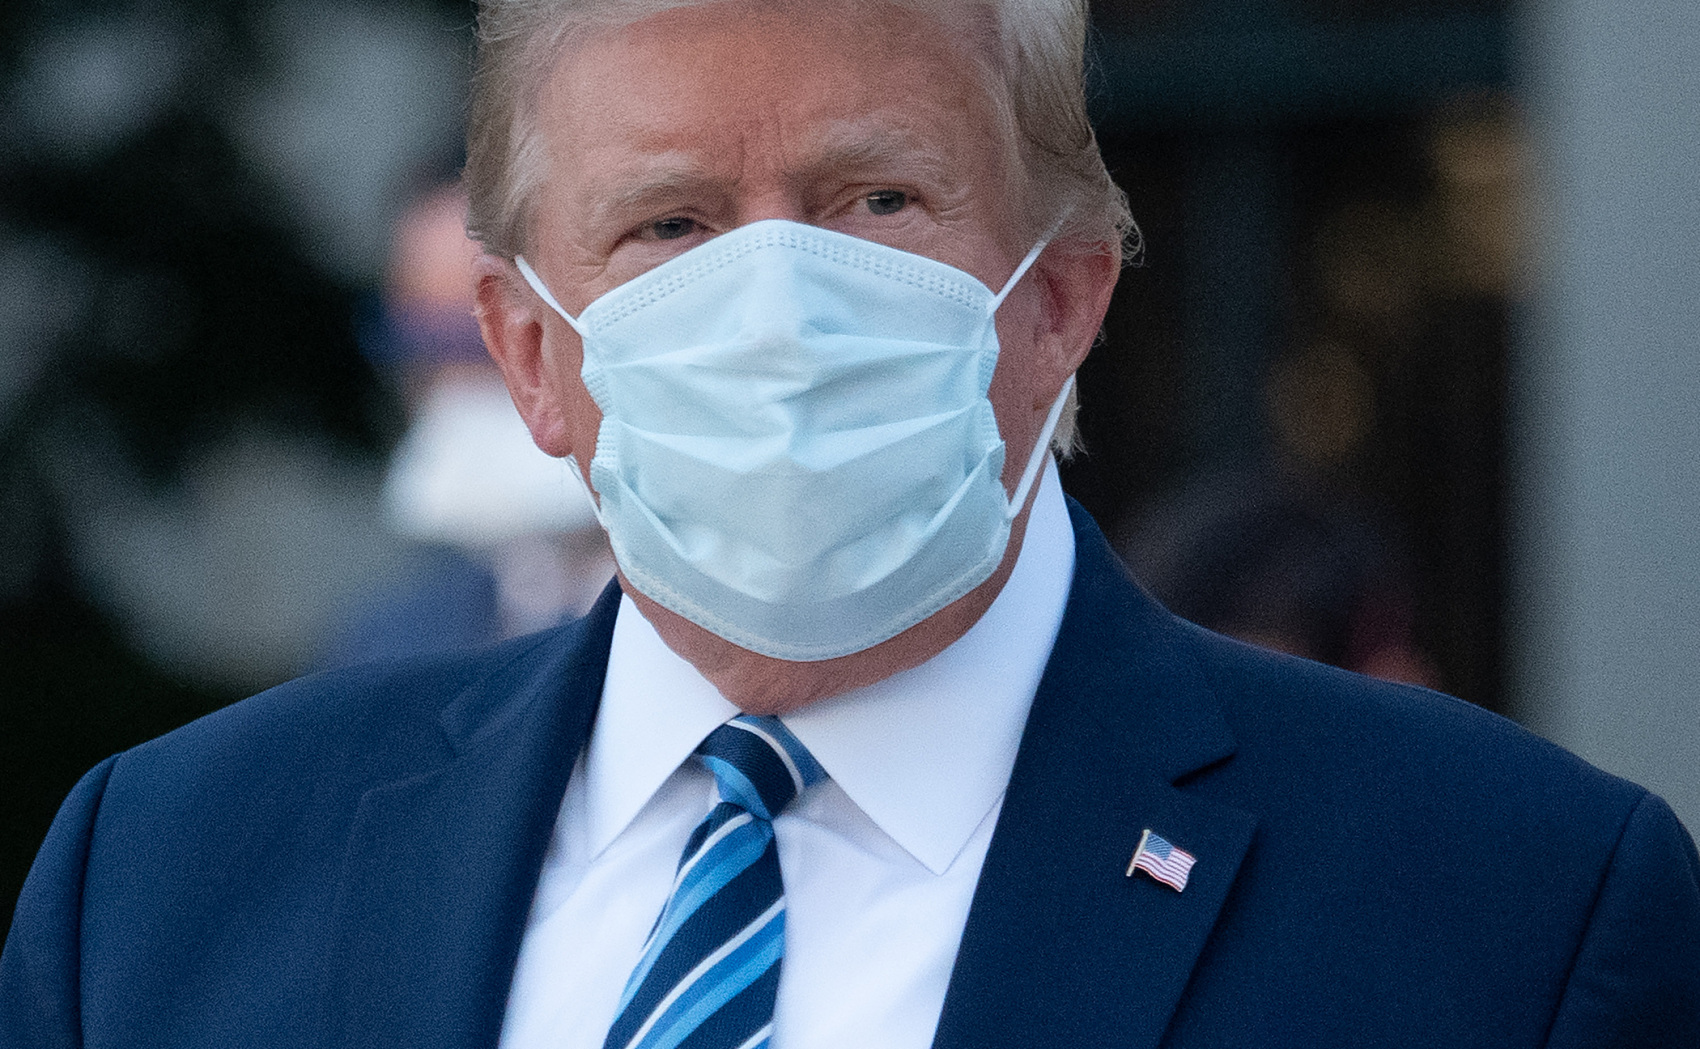 Trump has approved revised COVID-19 relief package: White House official